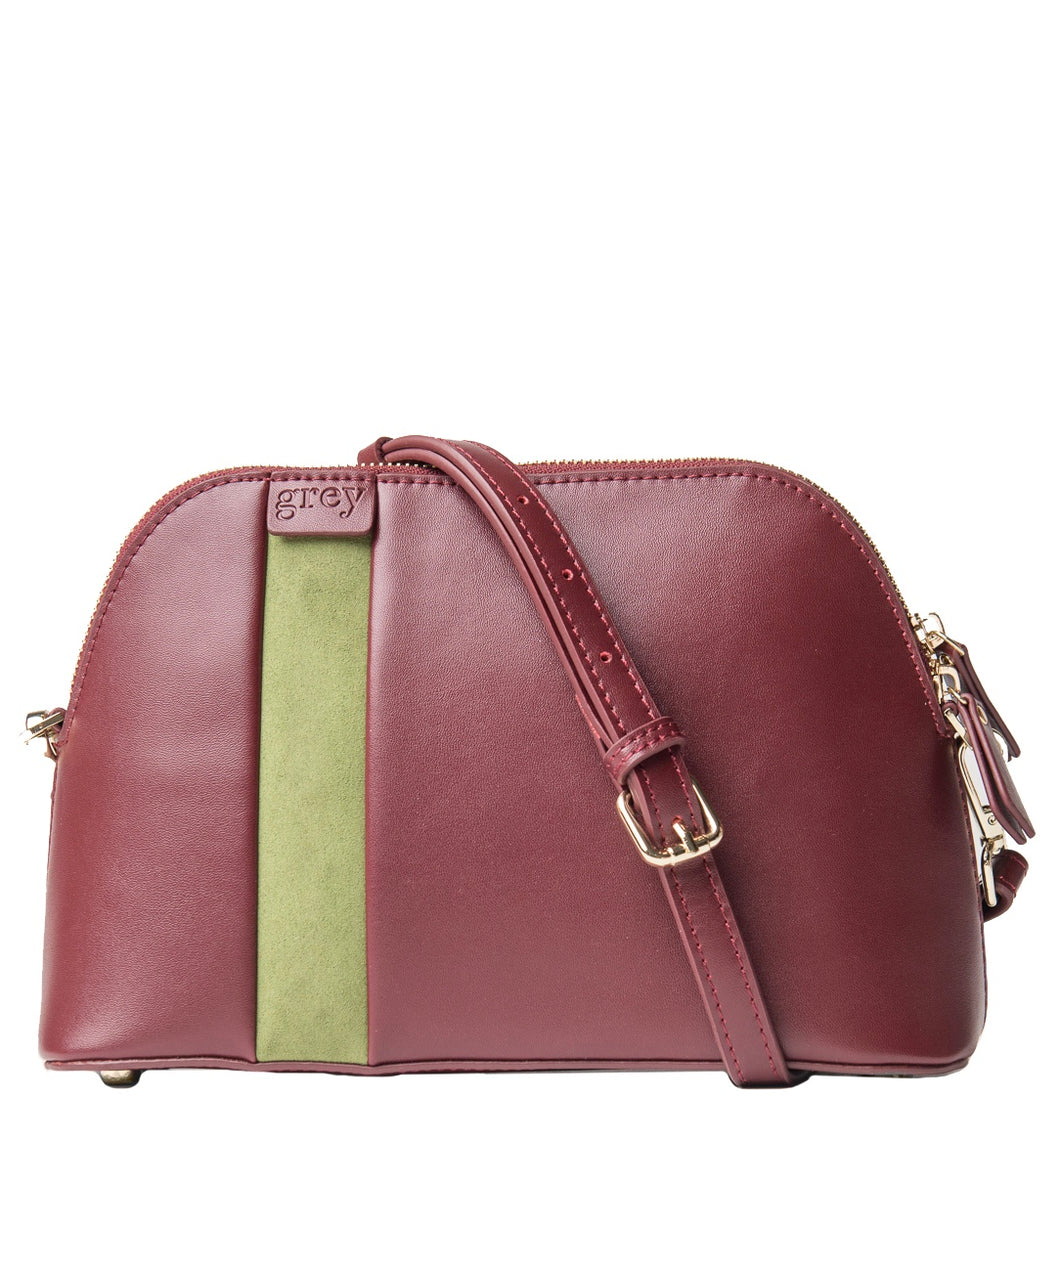 Mayden Cross Body (Burgundy Leather with Green Suede) - Time Limited Sale! - greyortenhill